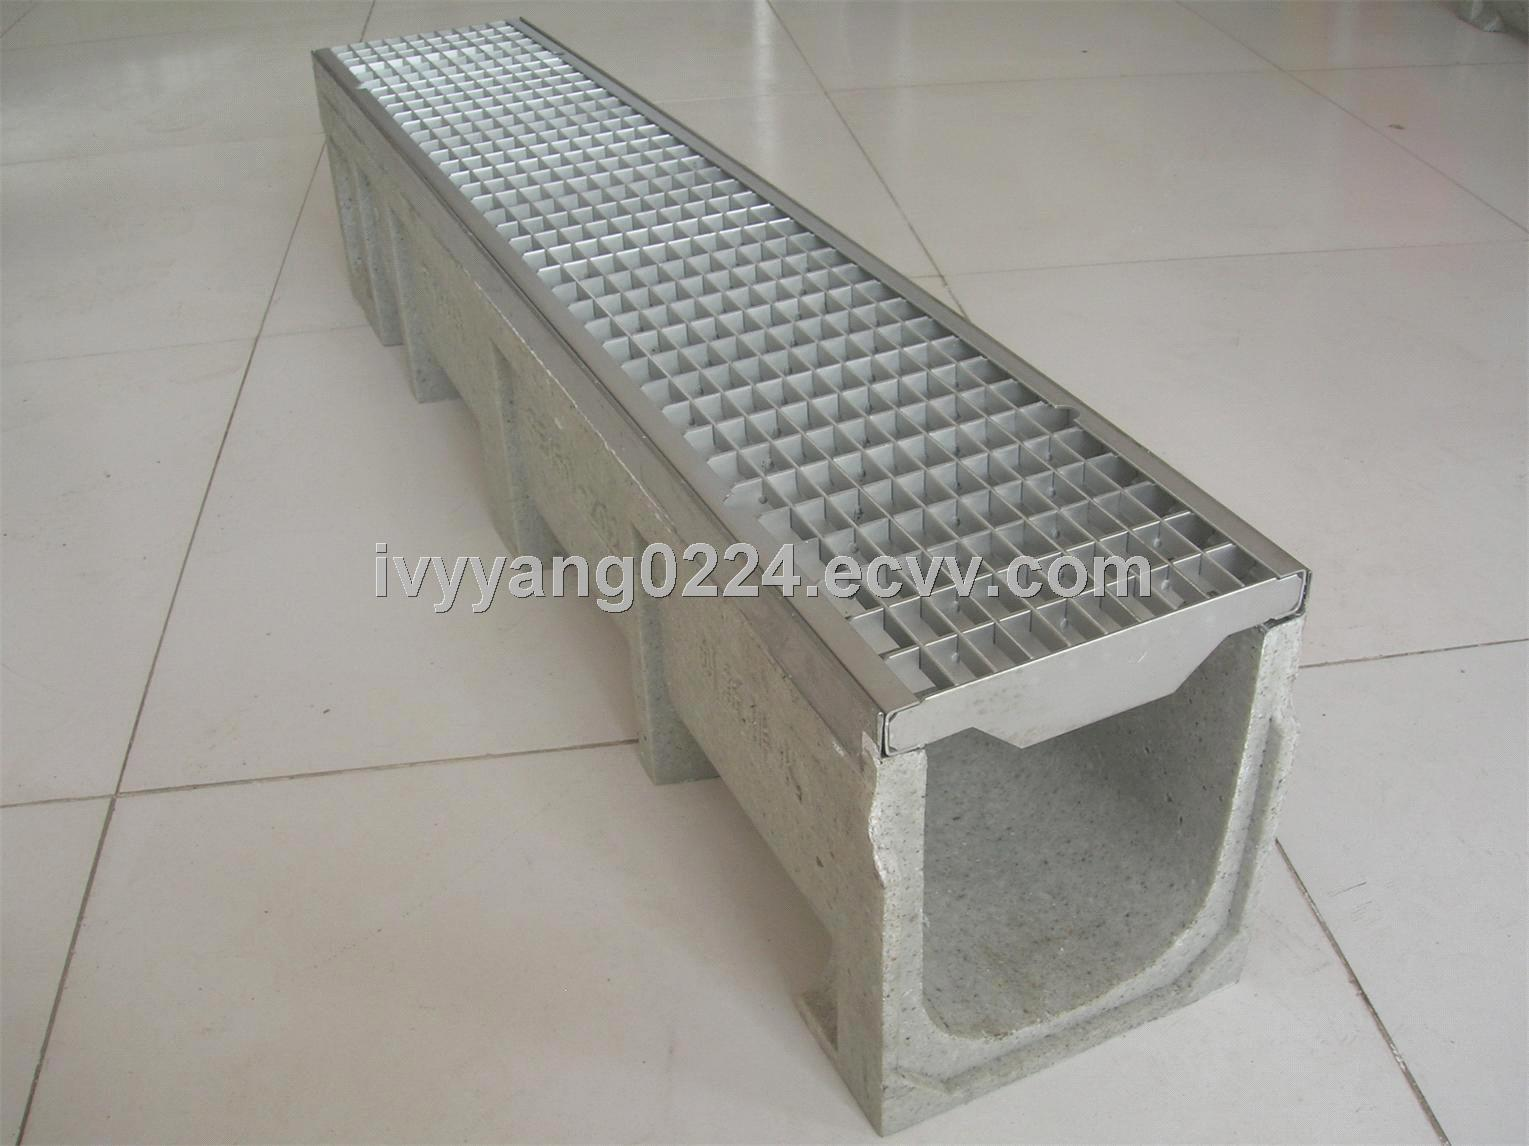 Polymer Concrete Trench Drain Drain System With Gratings